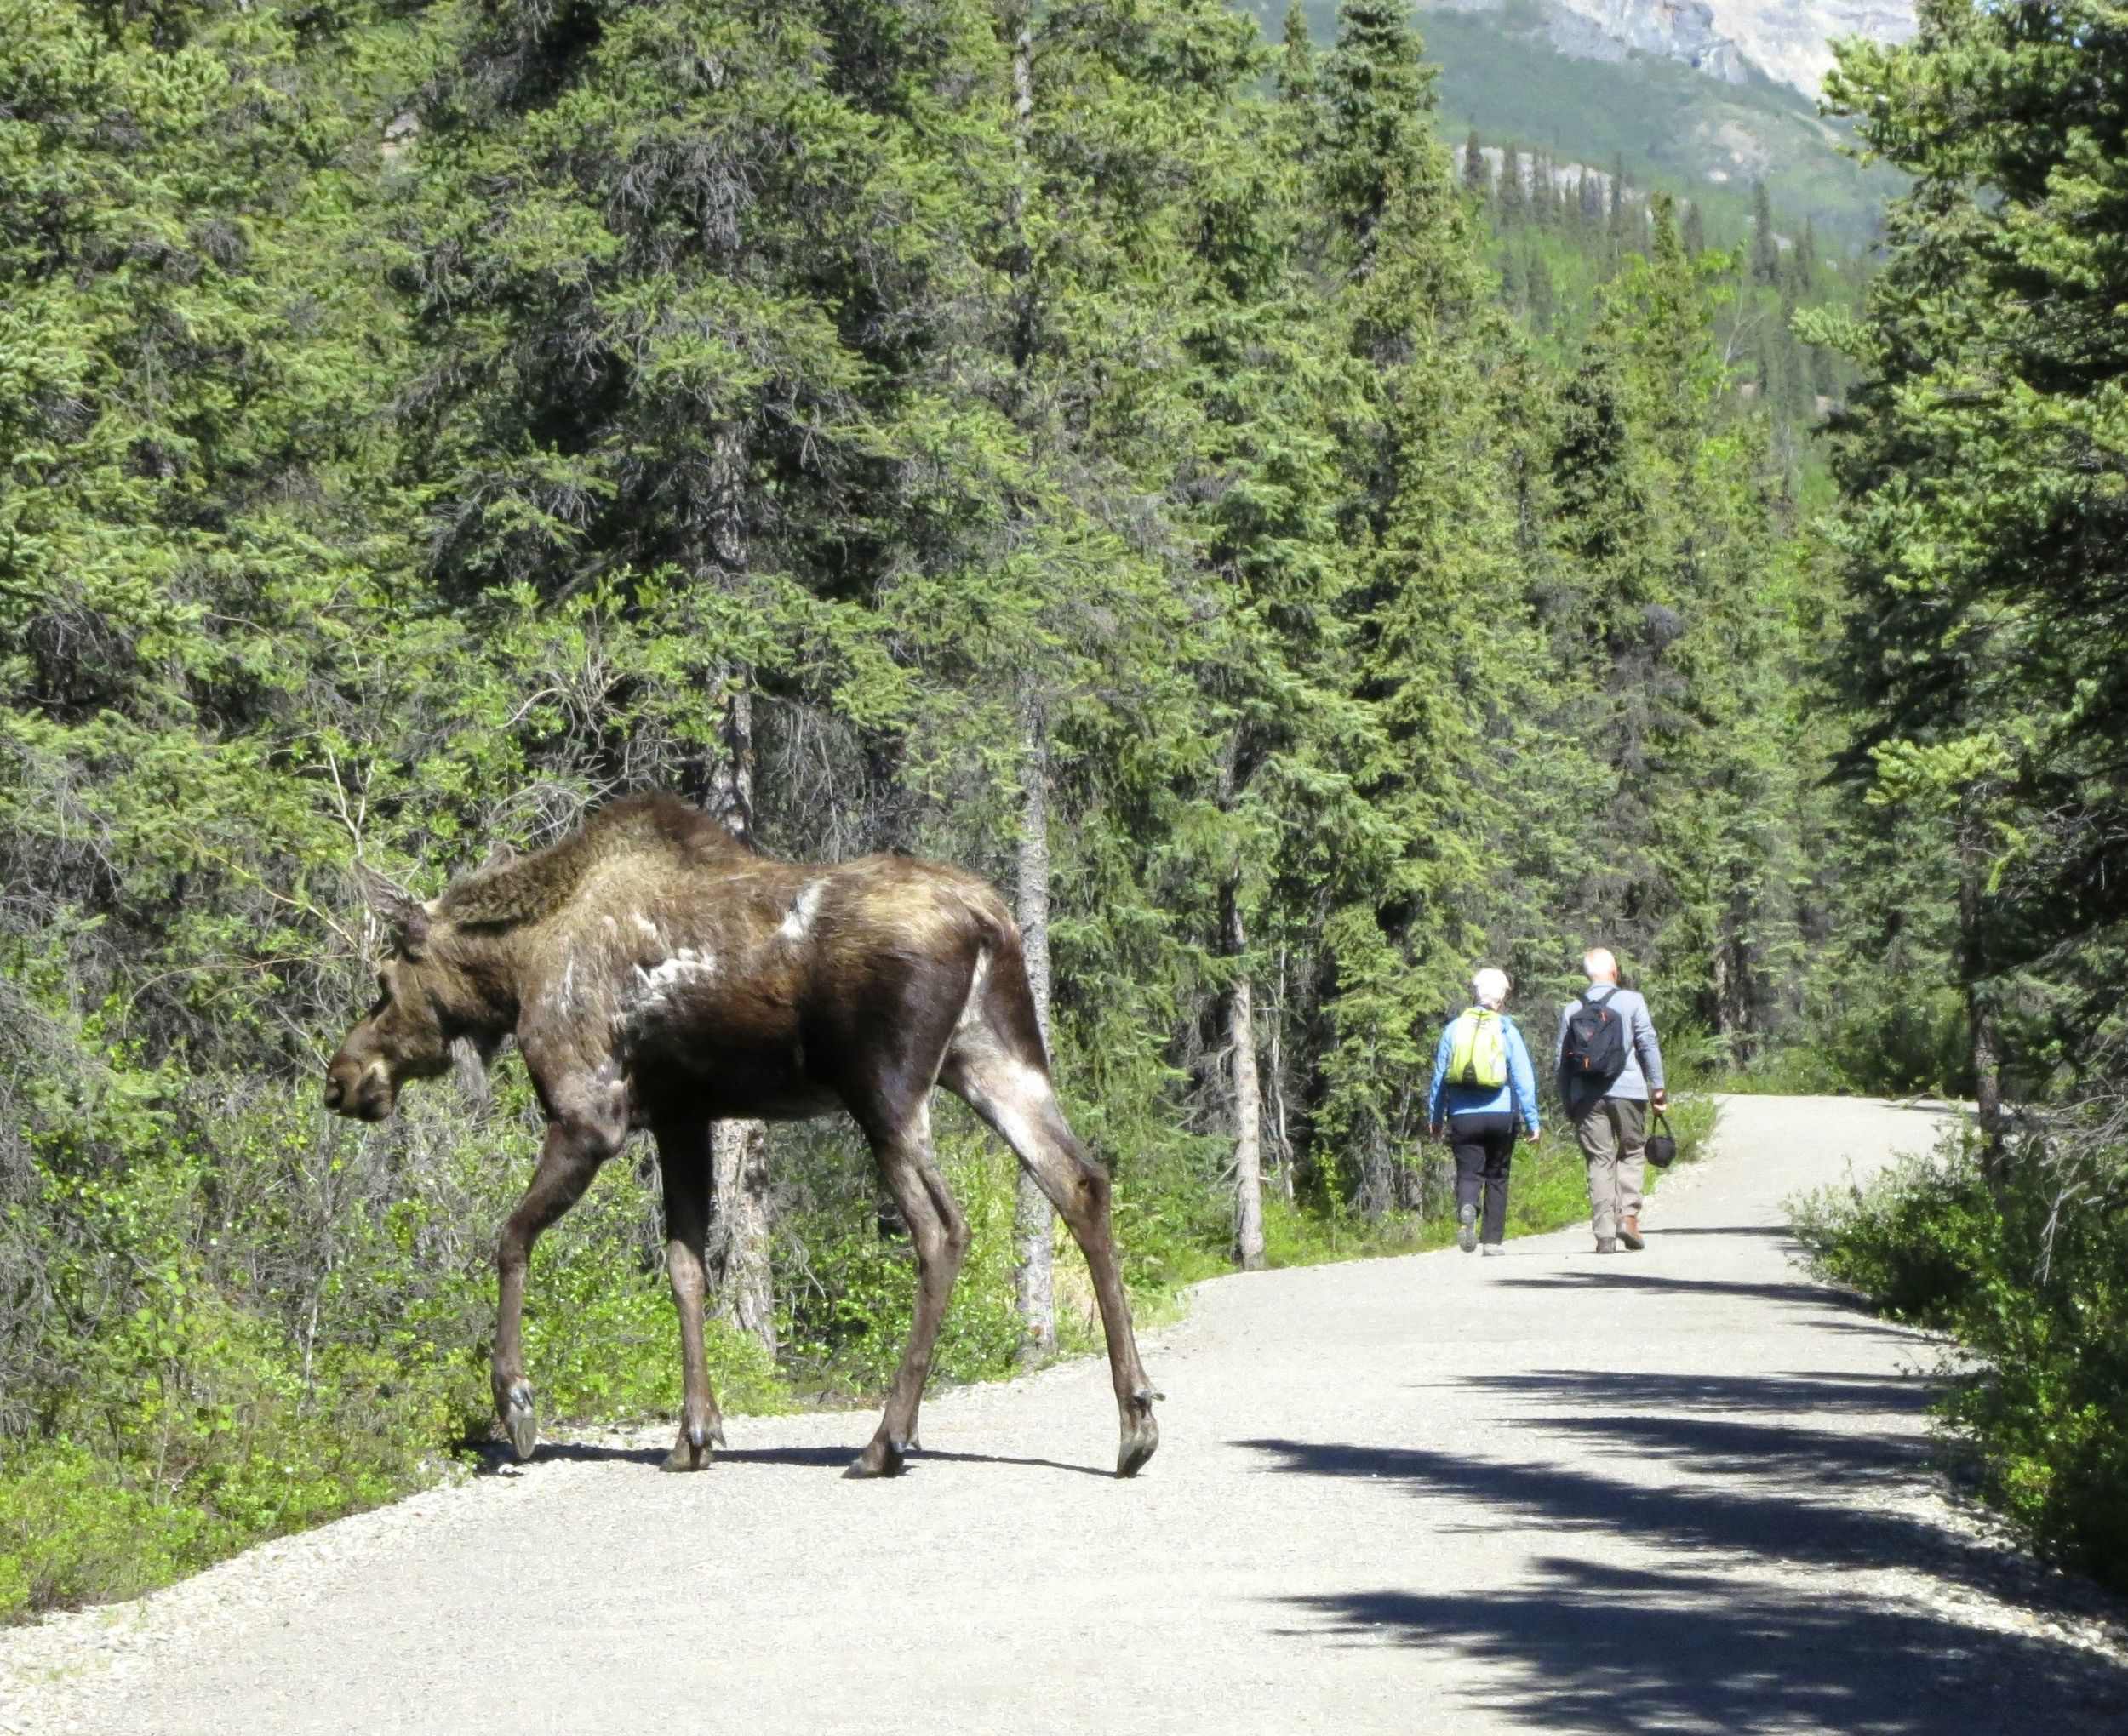 Real moose seen a few minutes later